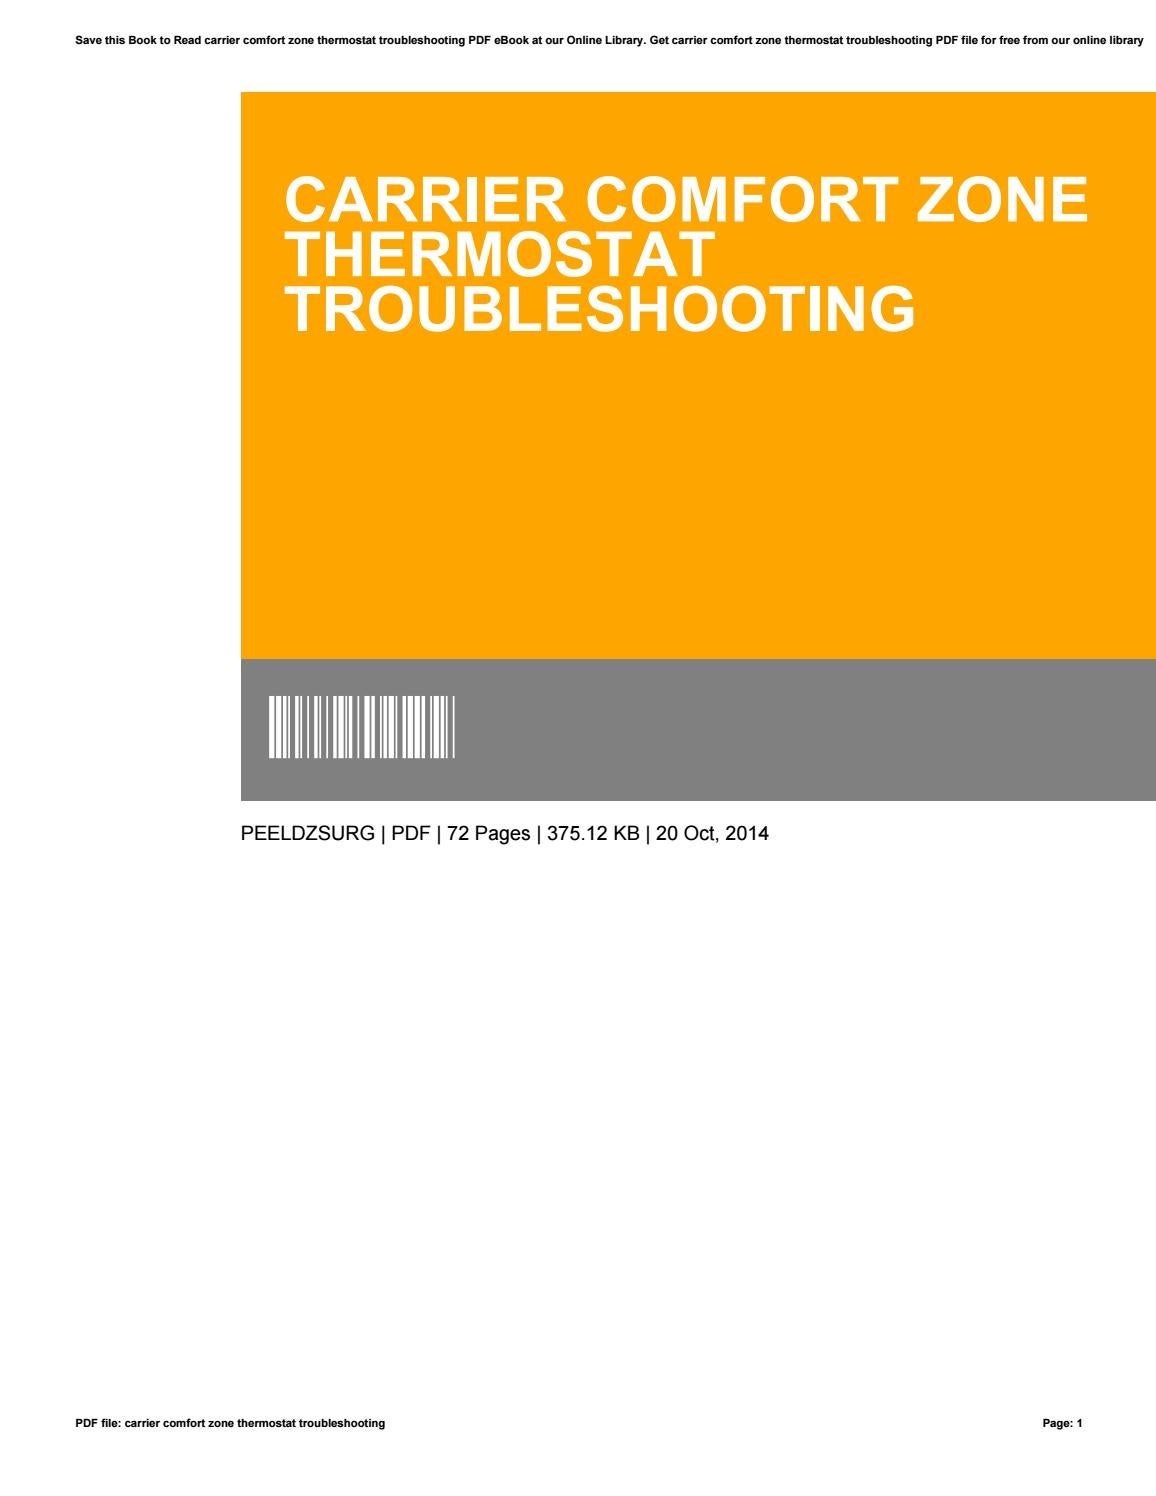 Carrier comfort zone thermostat troubleshooting by KarenFritz3440 - issuu